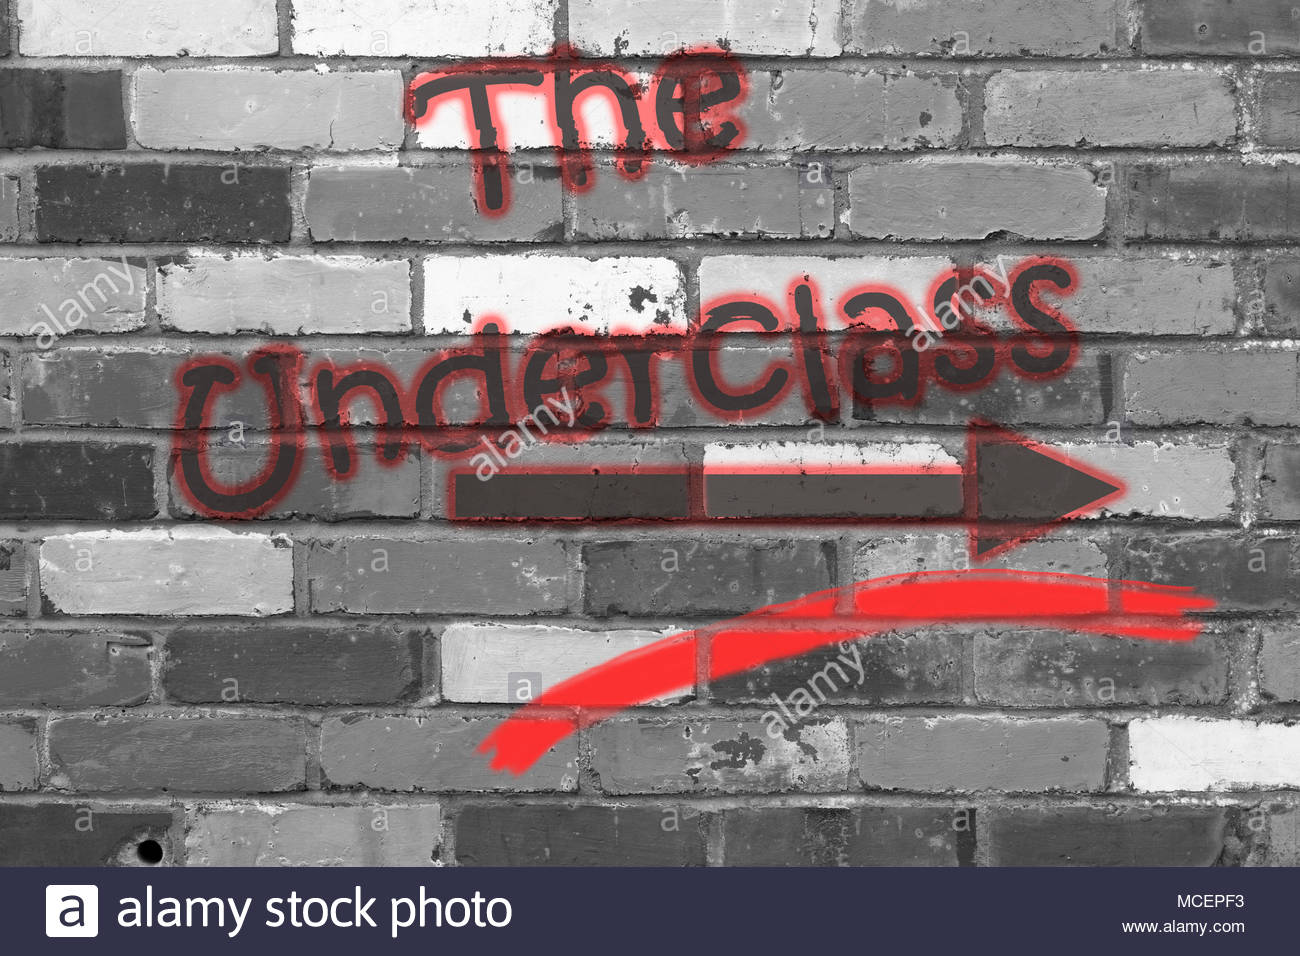 Looking at a black and white brickwall with the wording The Underclass with arrow. Dorset, England - Stock Image